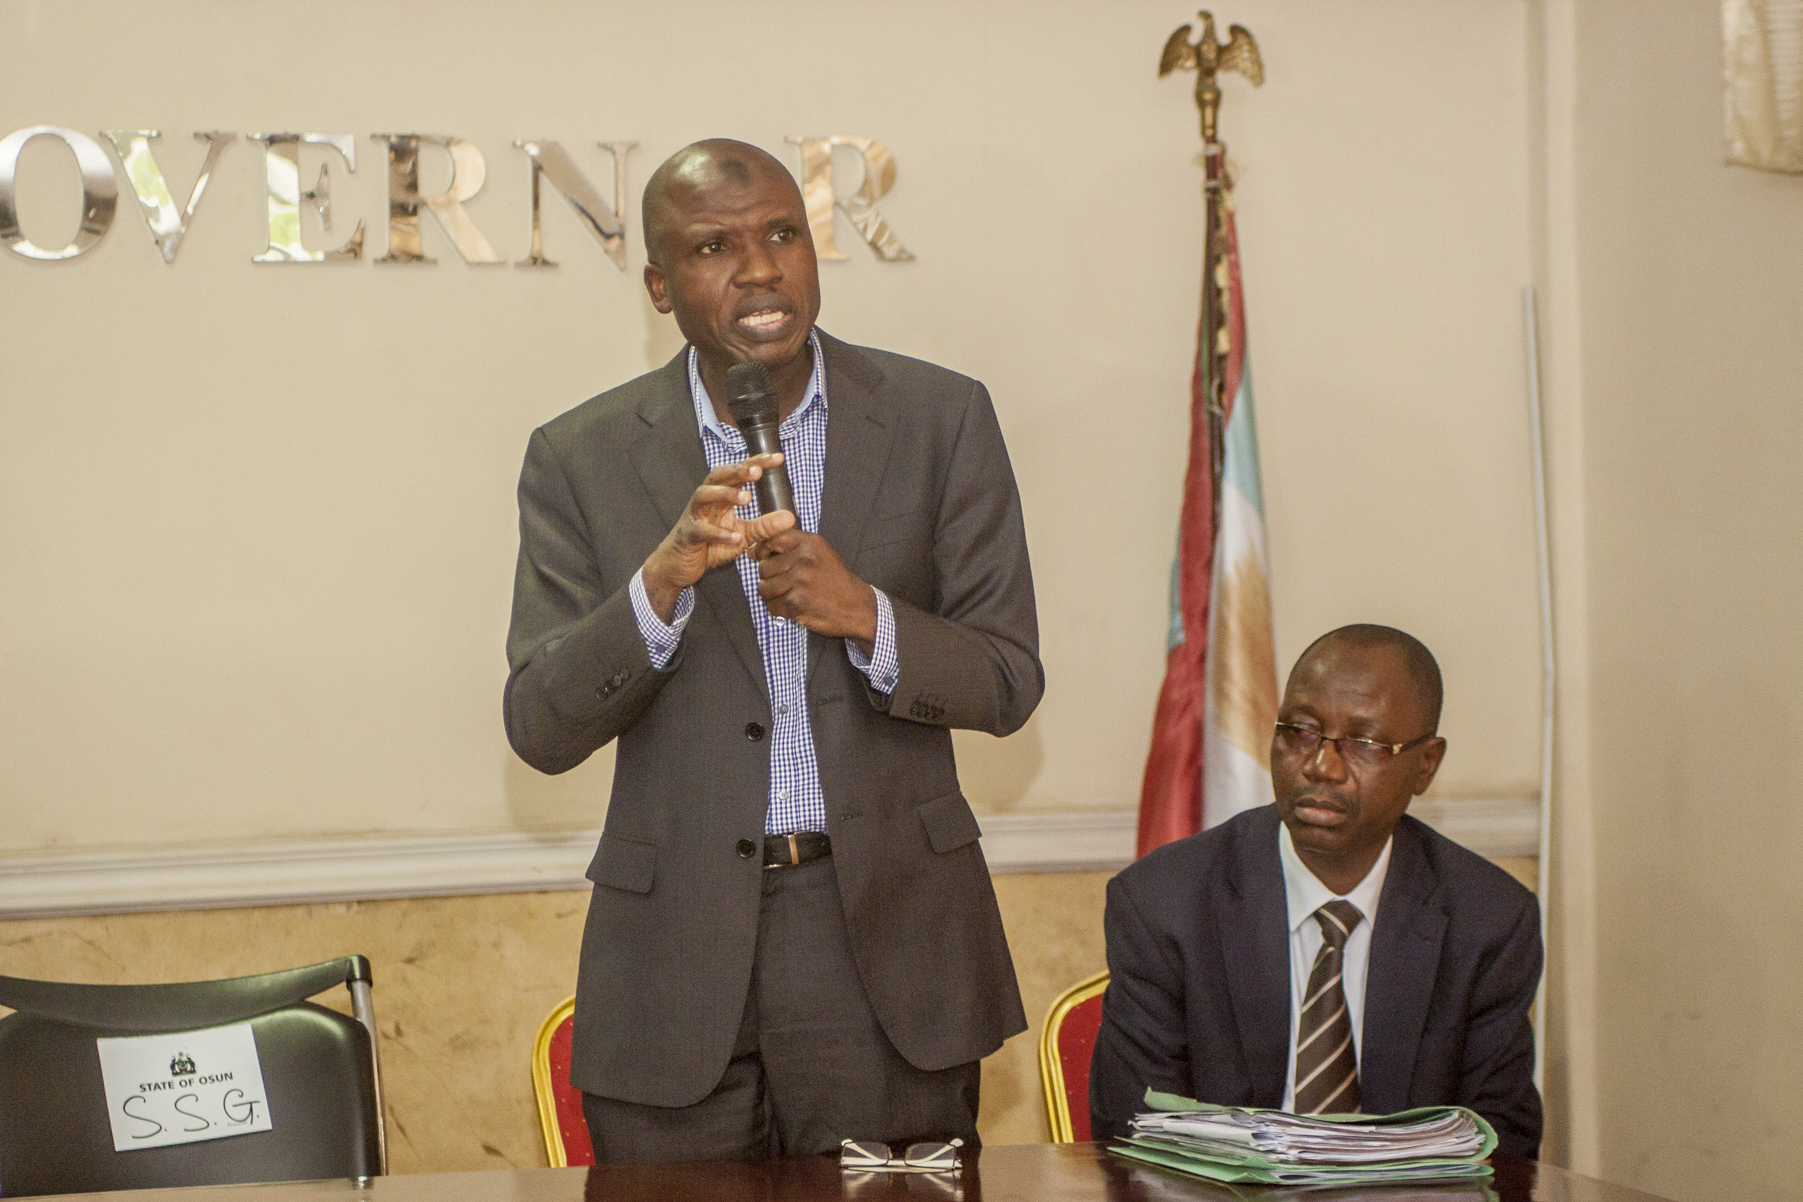 Tax Advisor of Growth and Employment in States (GEMS3), Mr. Dawuud Musa giving a brief introduction of Growth and Employment in States GEMS3